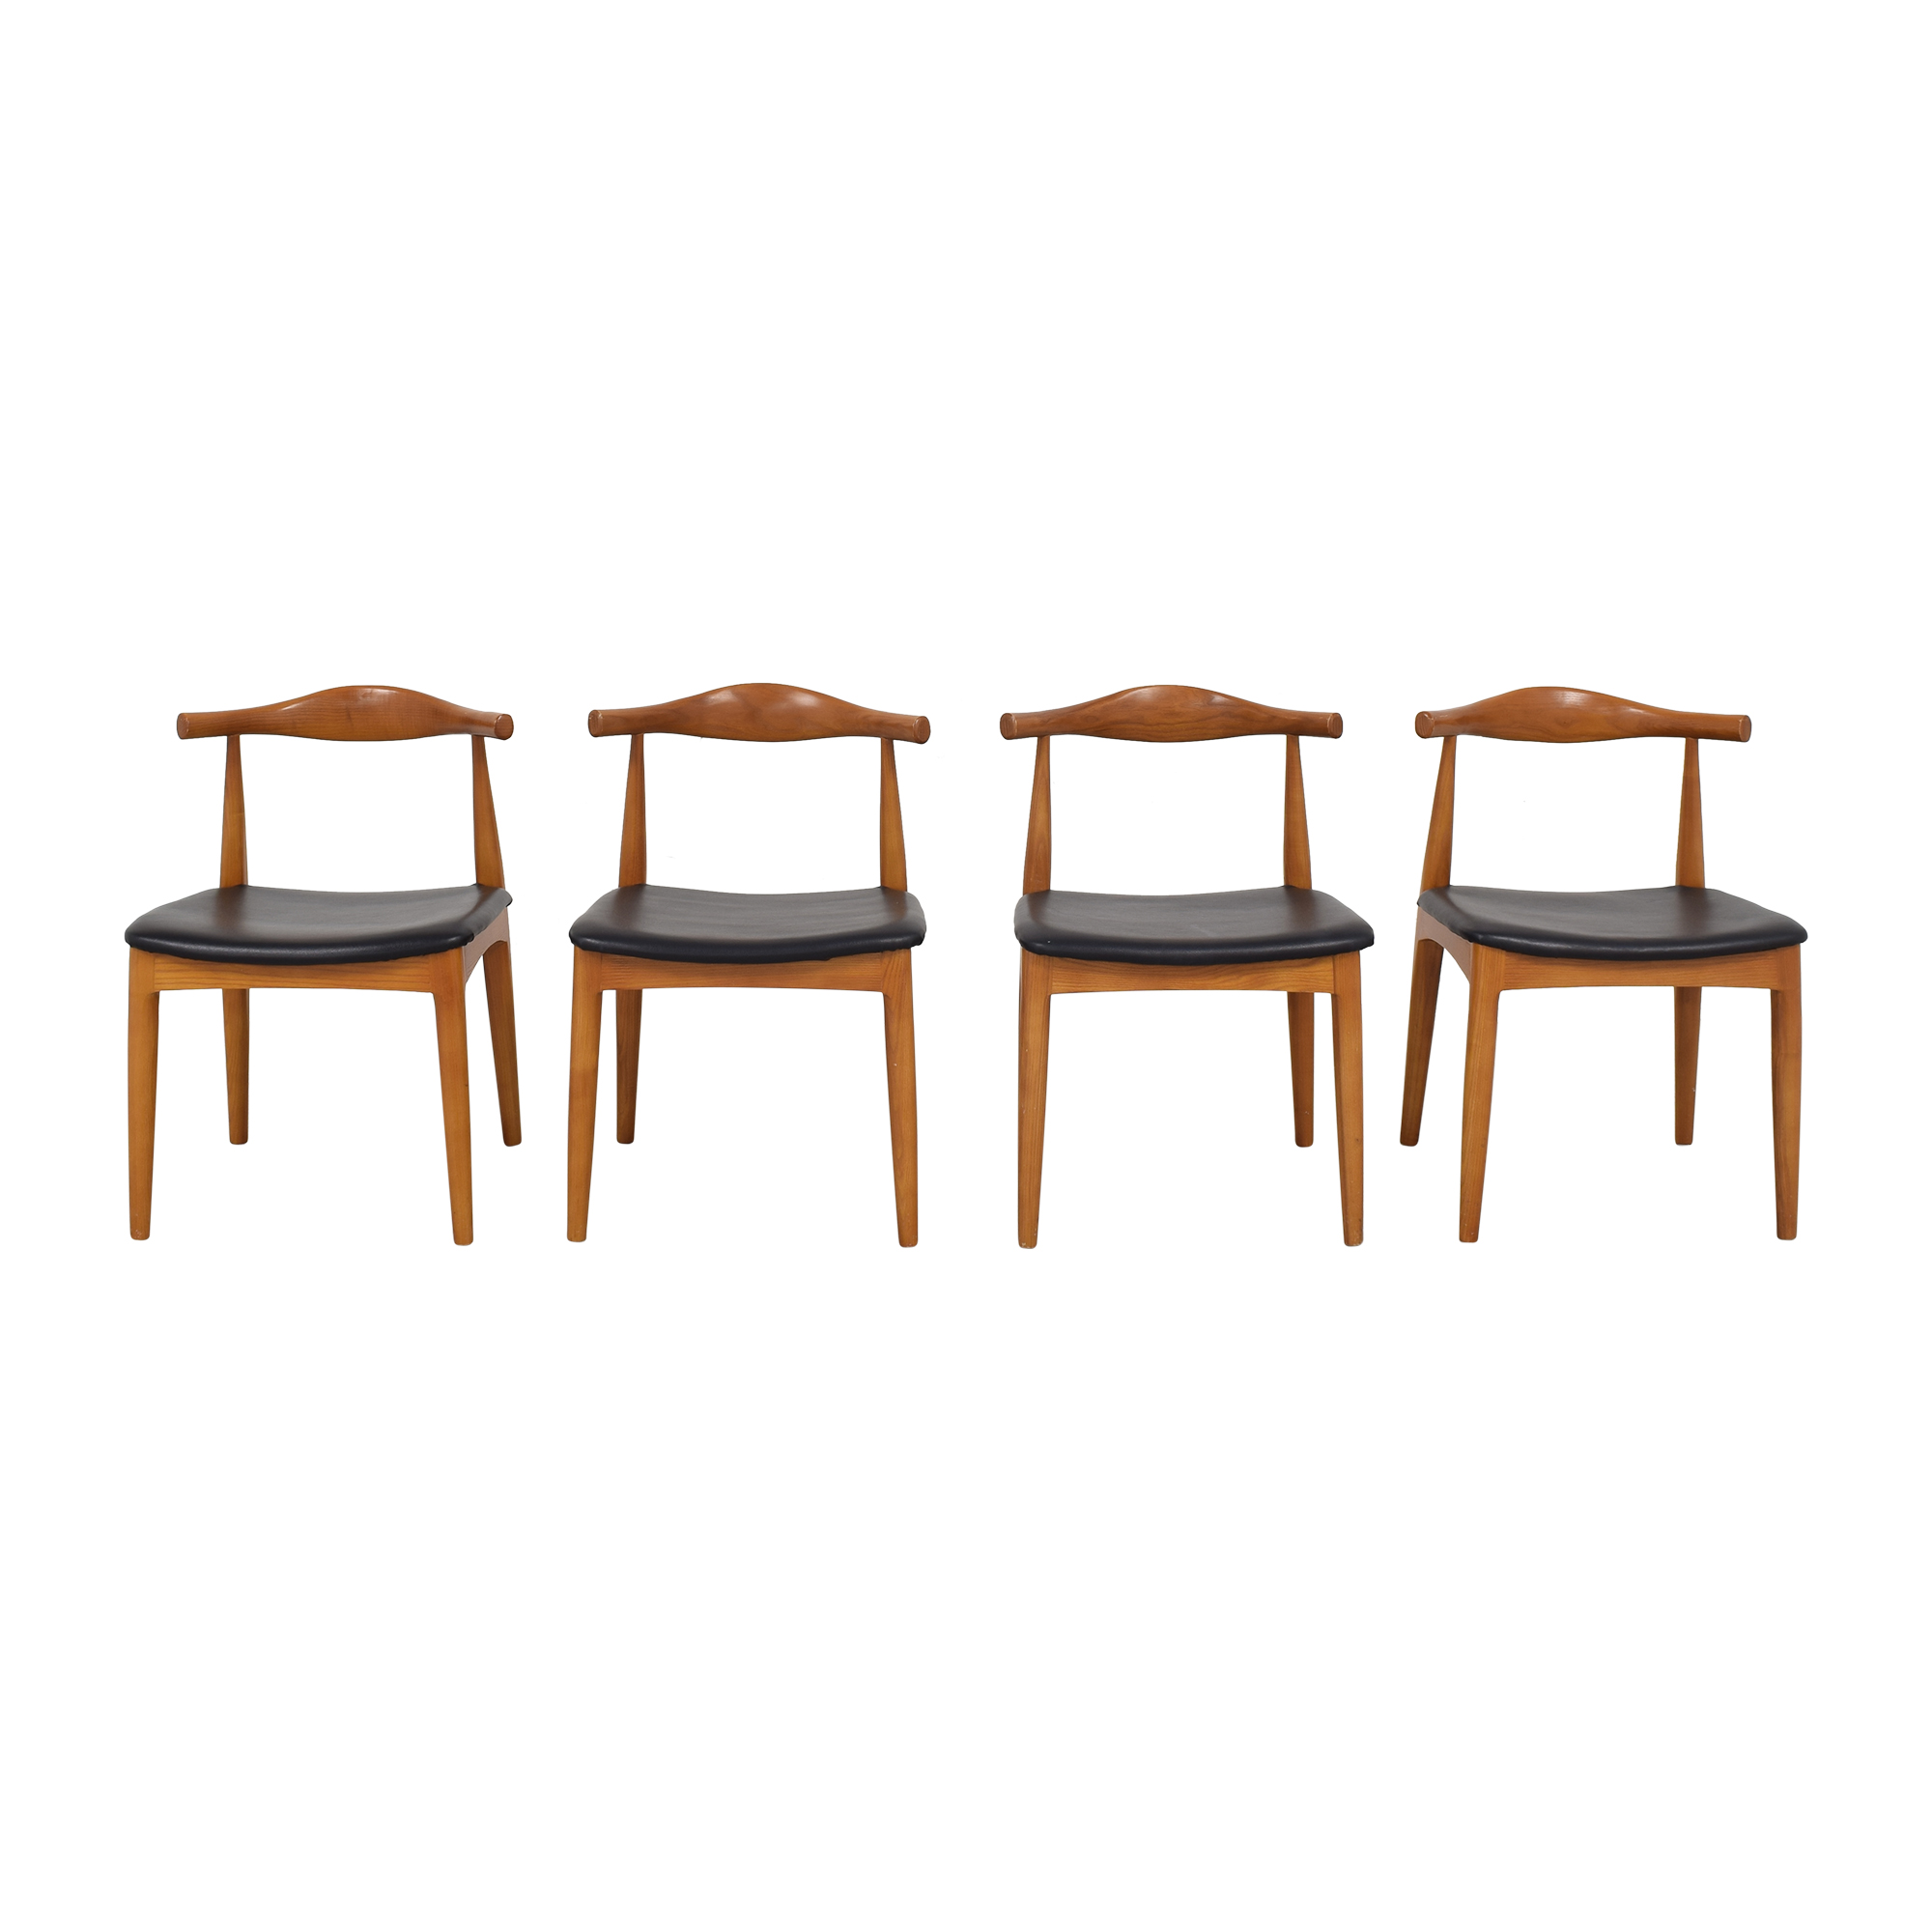 France and Son France and Son Reproduction CH24 Wishbone-Style Chairs for sale